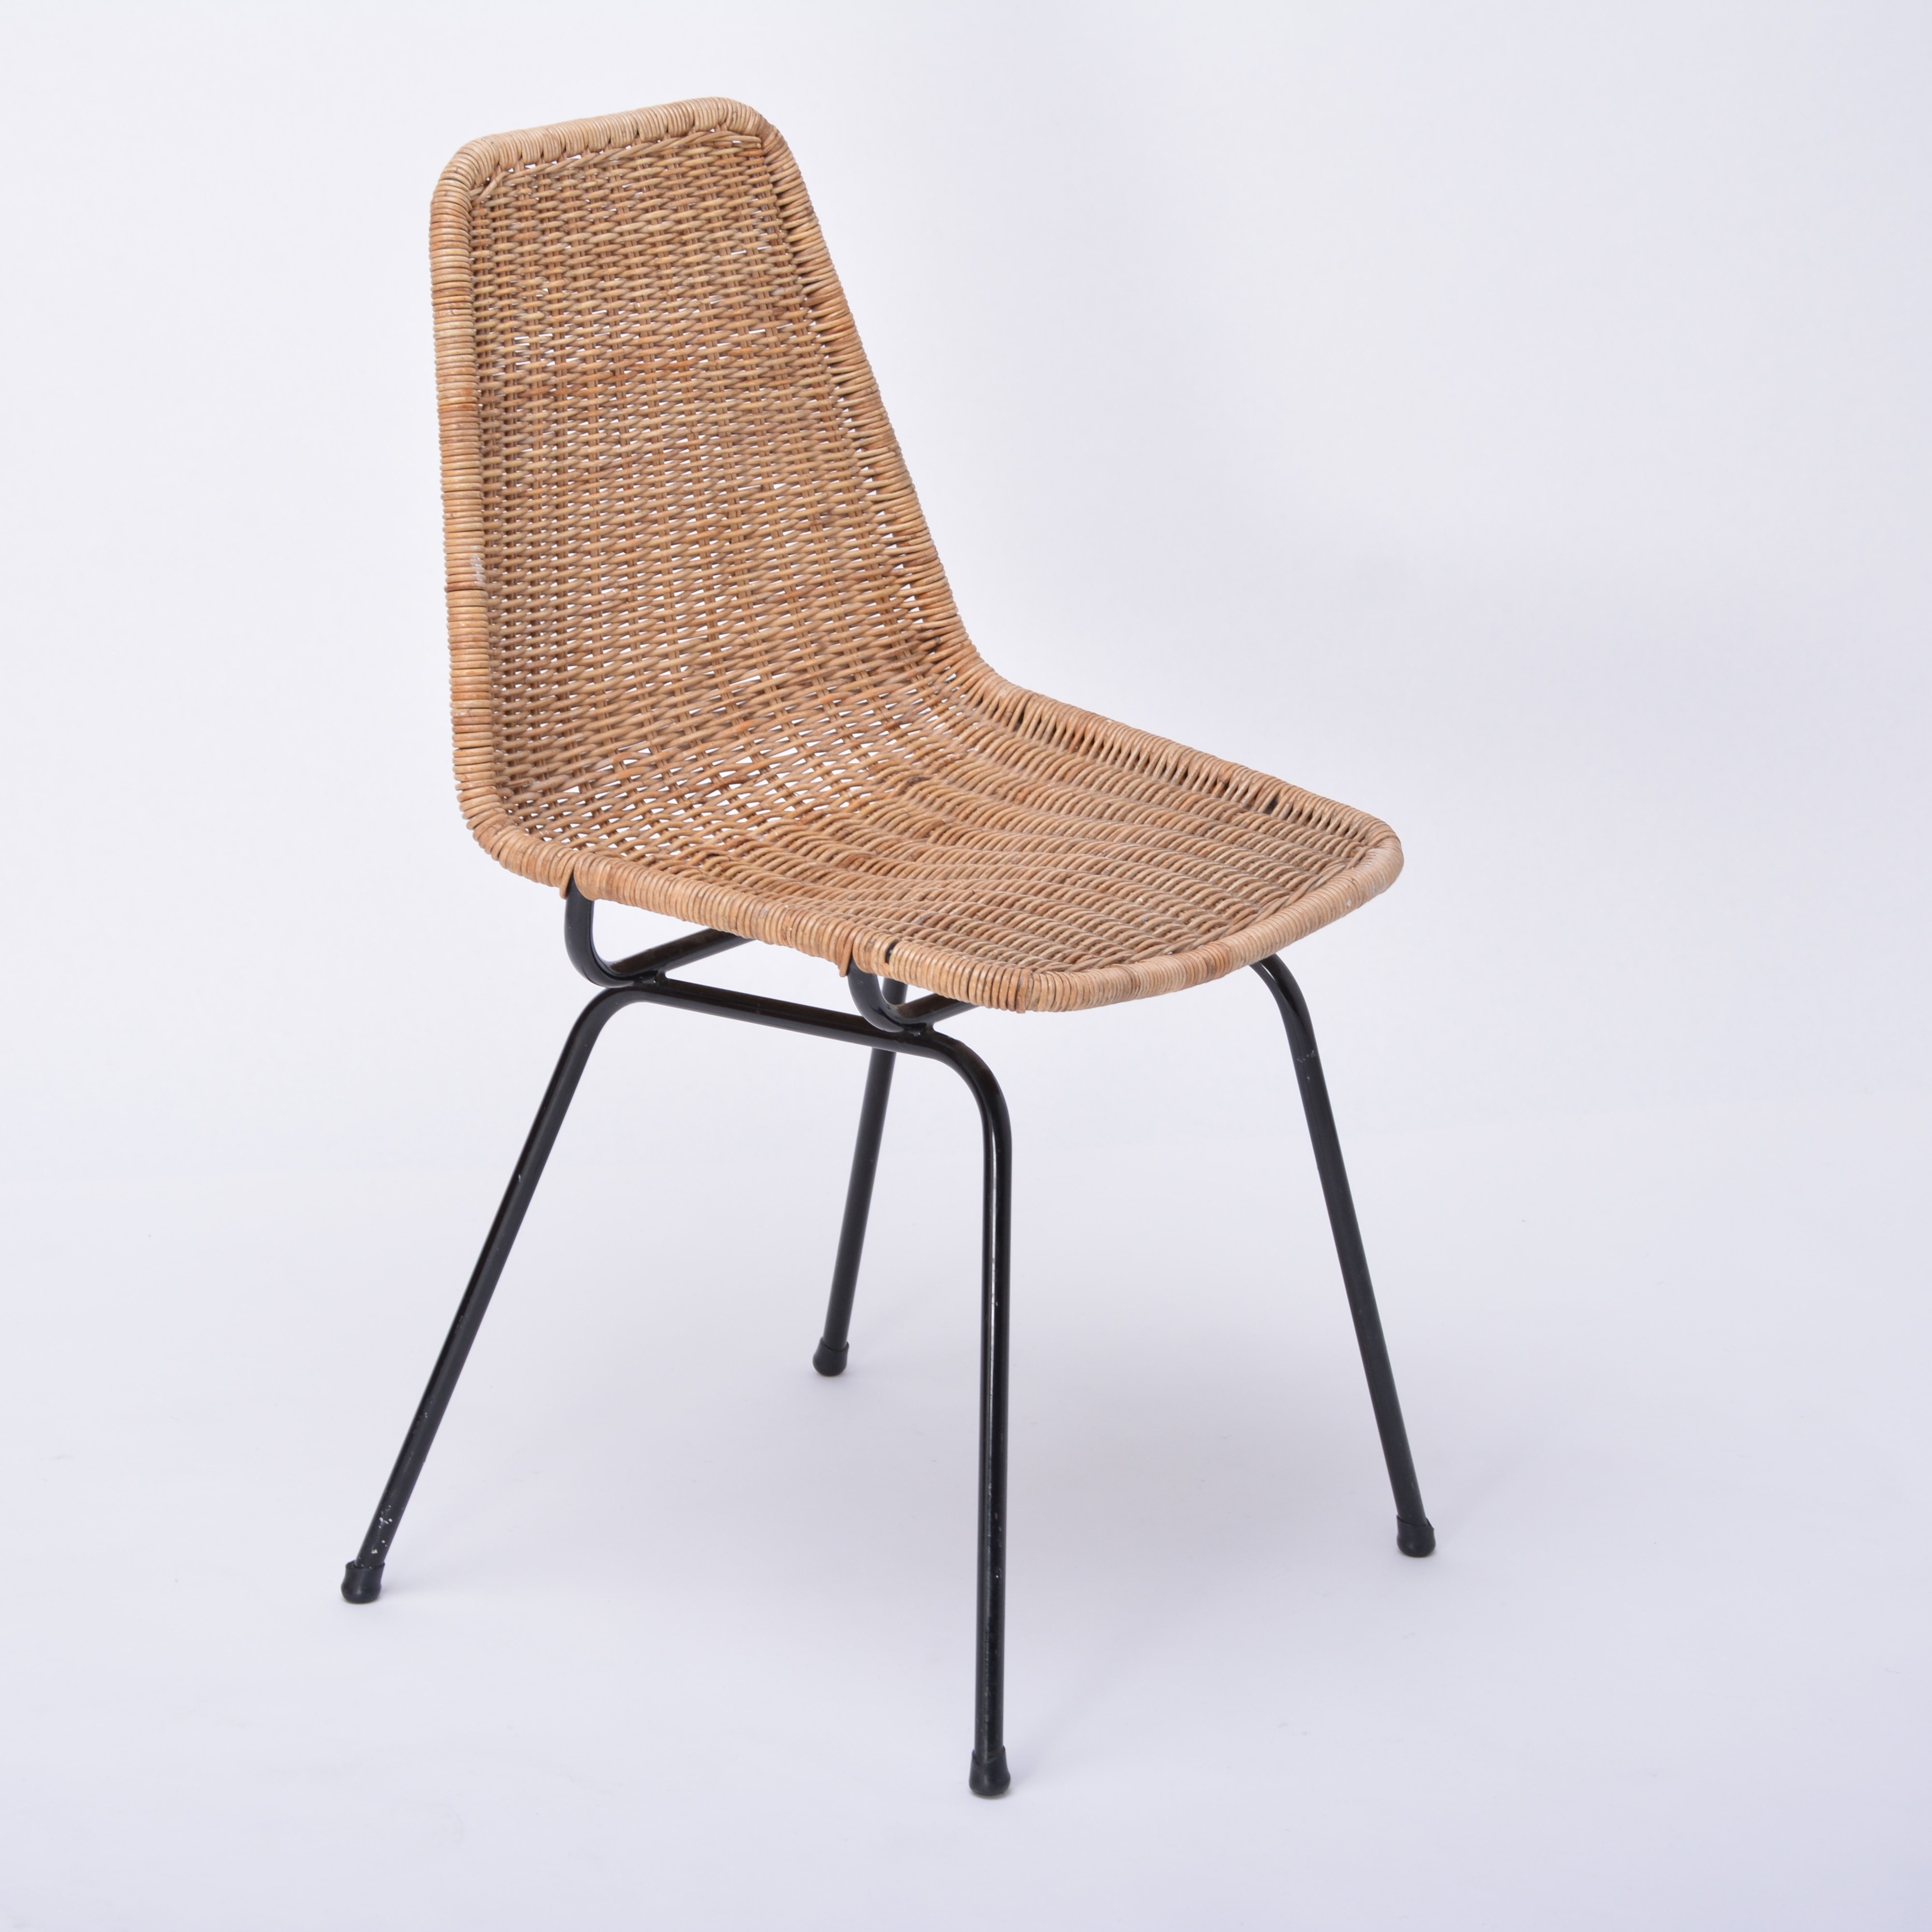 Excellent Vintage Rattan Italia 100 Dining Chair By Rotanhuis Ocoug Best Dining Table And Chair Ideas Images Ocougorg